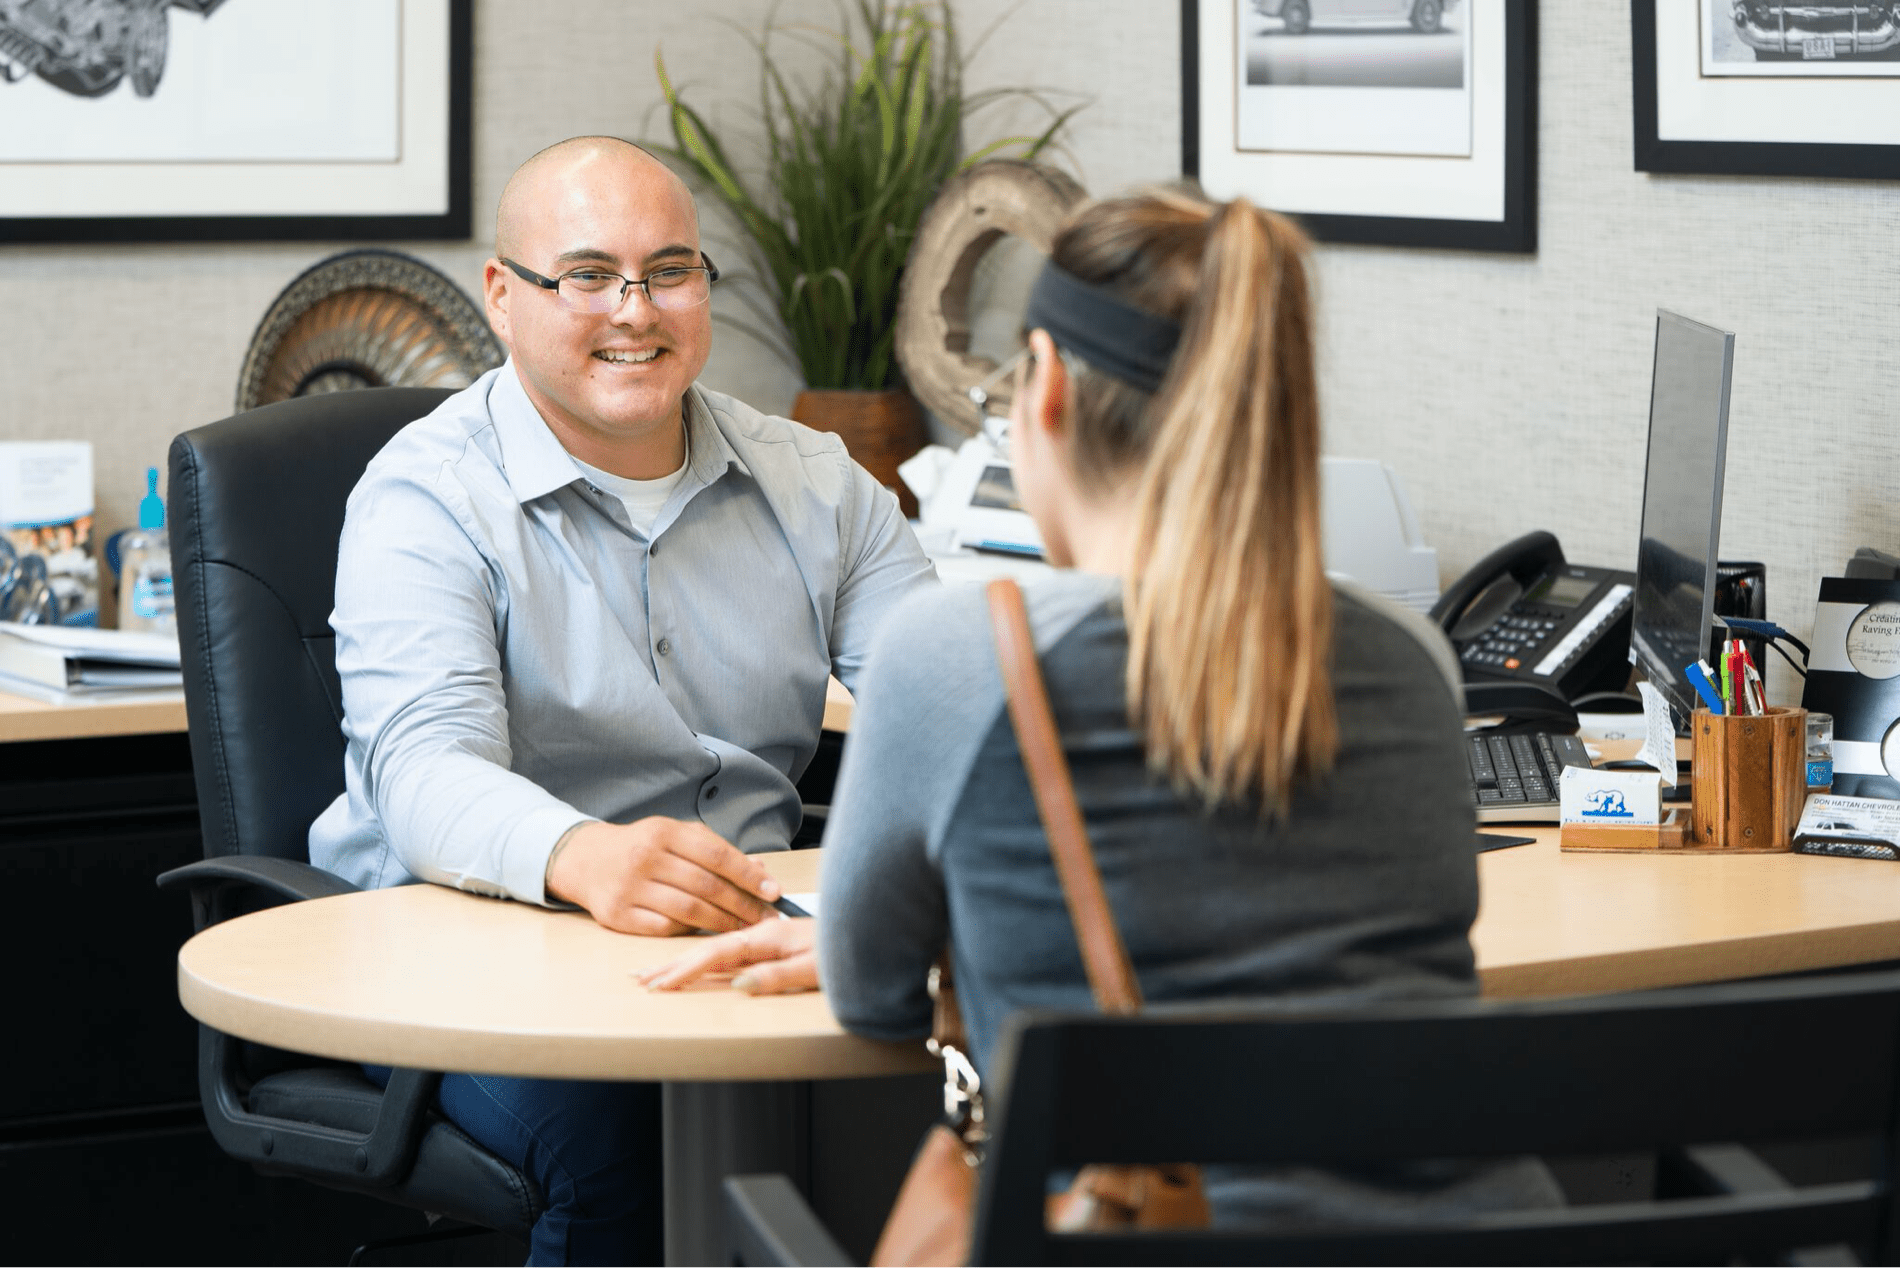 finance officer meets with customer at desk